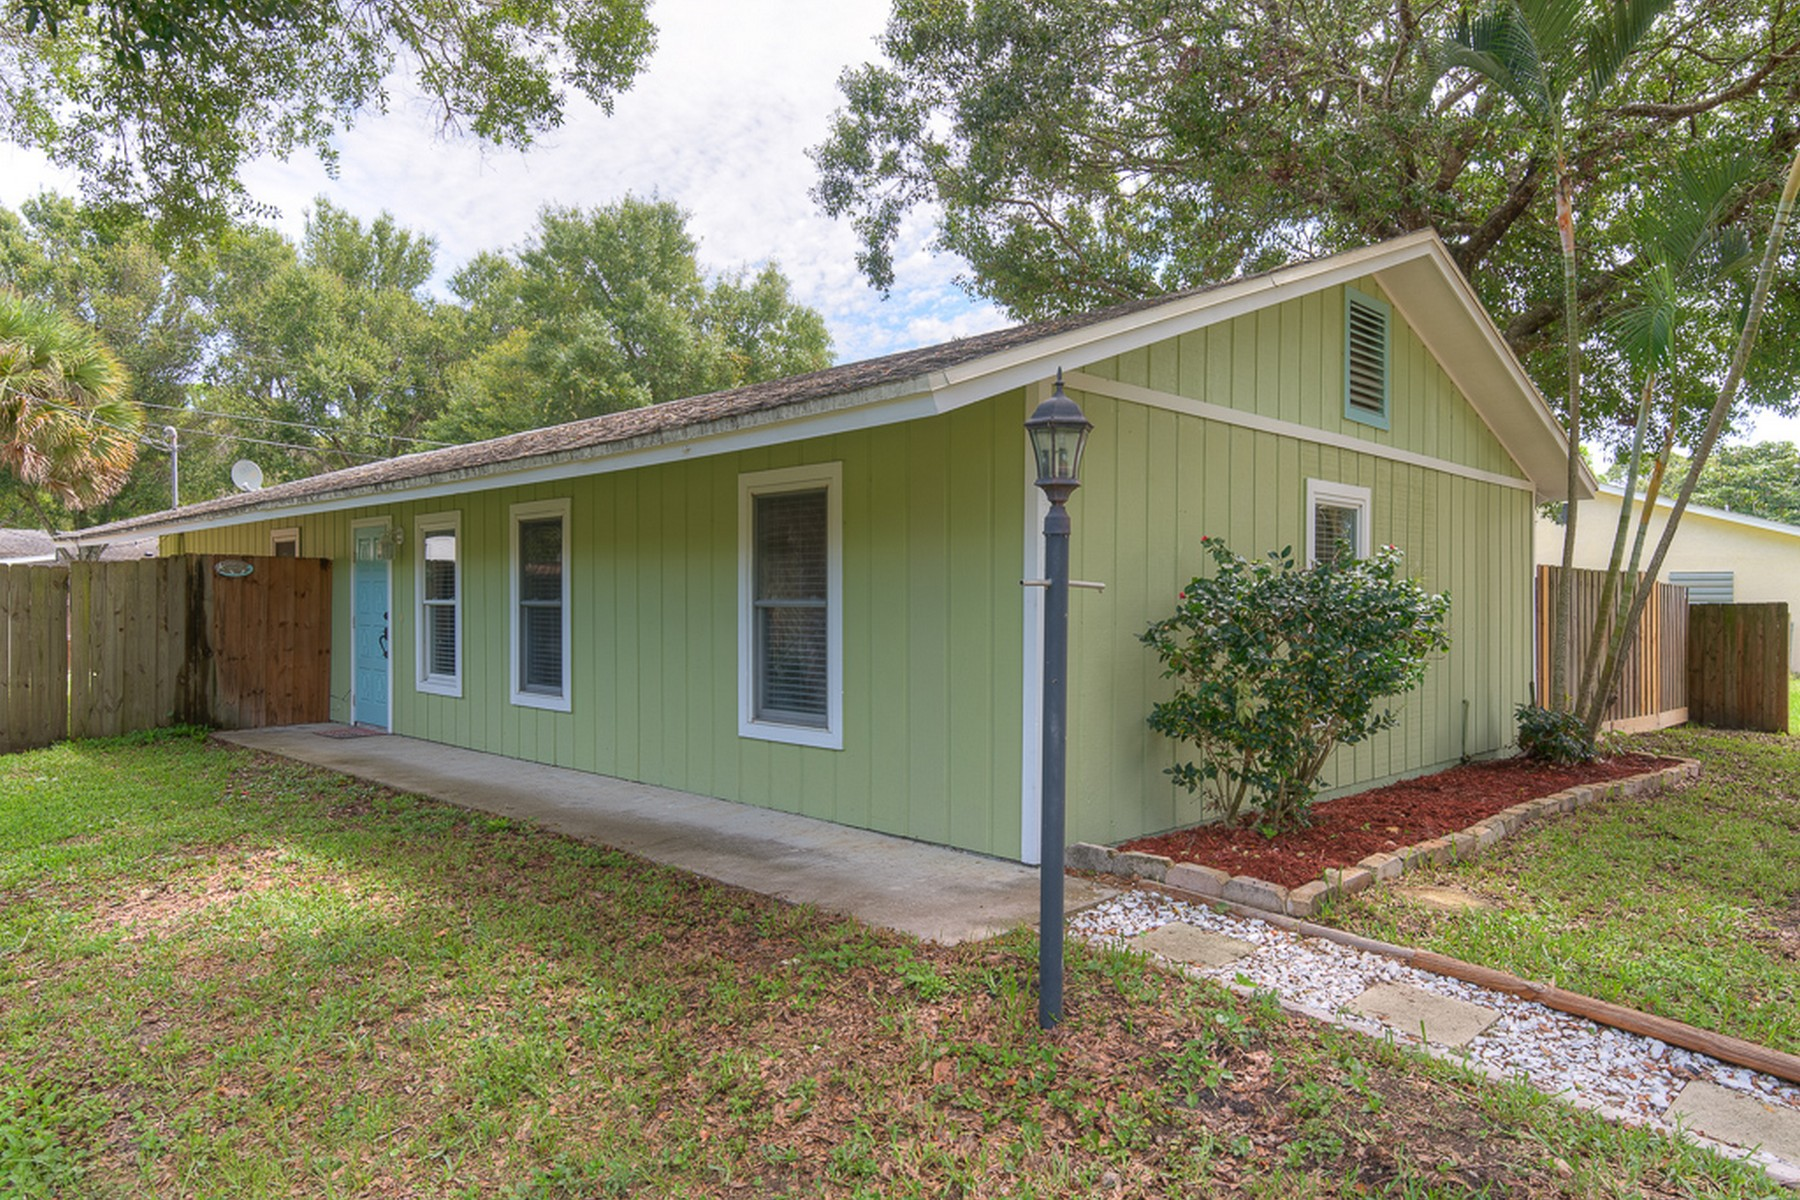 Single Family Home for Sale at Adorable Key West Style Bungalow 3320 2nd Street Vero Beach, Florida, 32968 United States